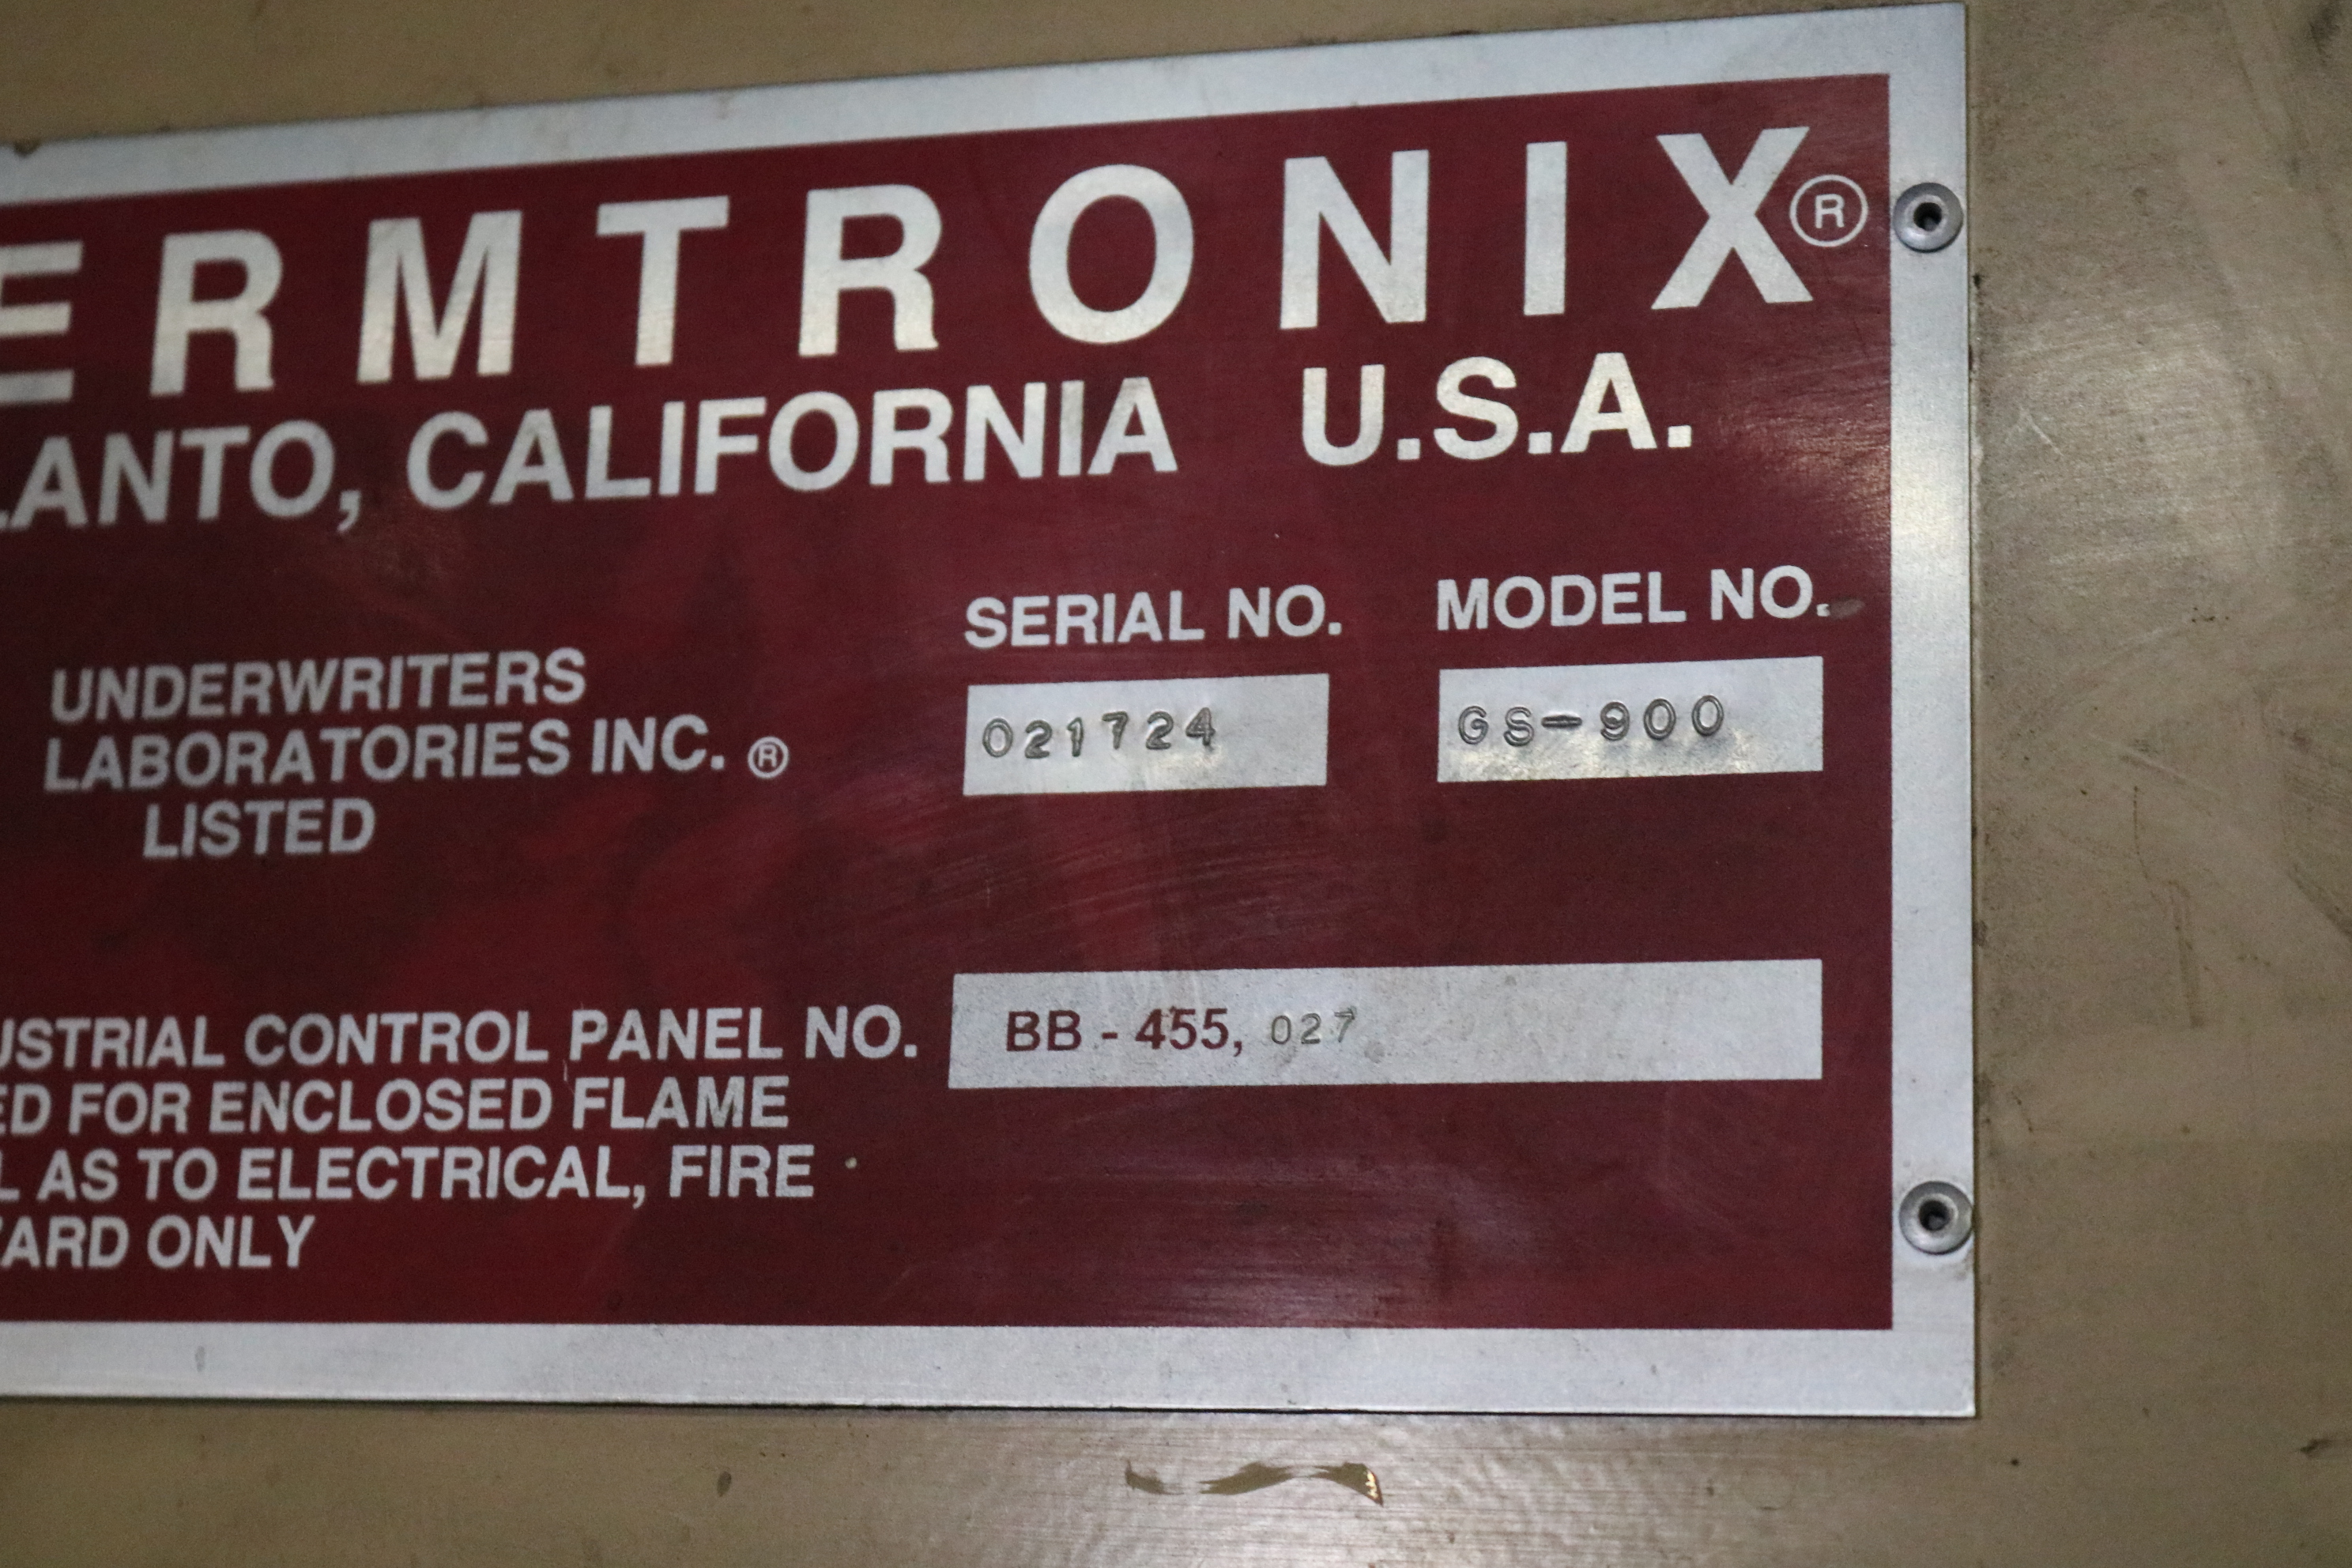 Lot 46 - 2002 THERMTRONIX MODEL GS900 900 LB GAS FRIED MELTING FURNACE, GAS SYSTEM AND CONTROLS, S/N 021724